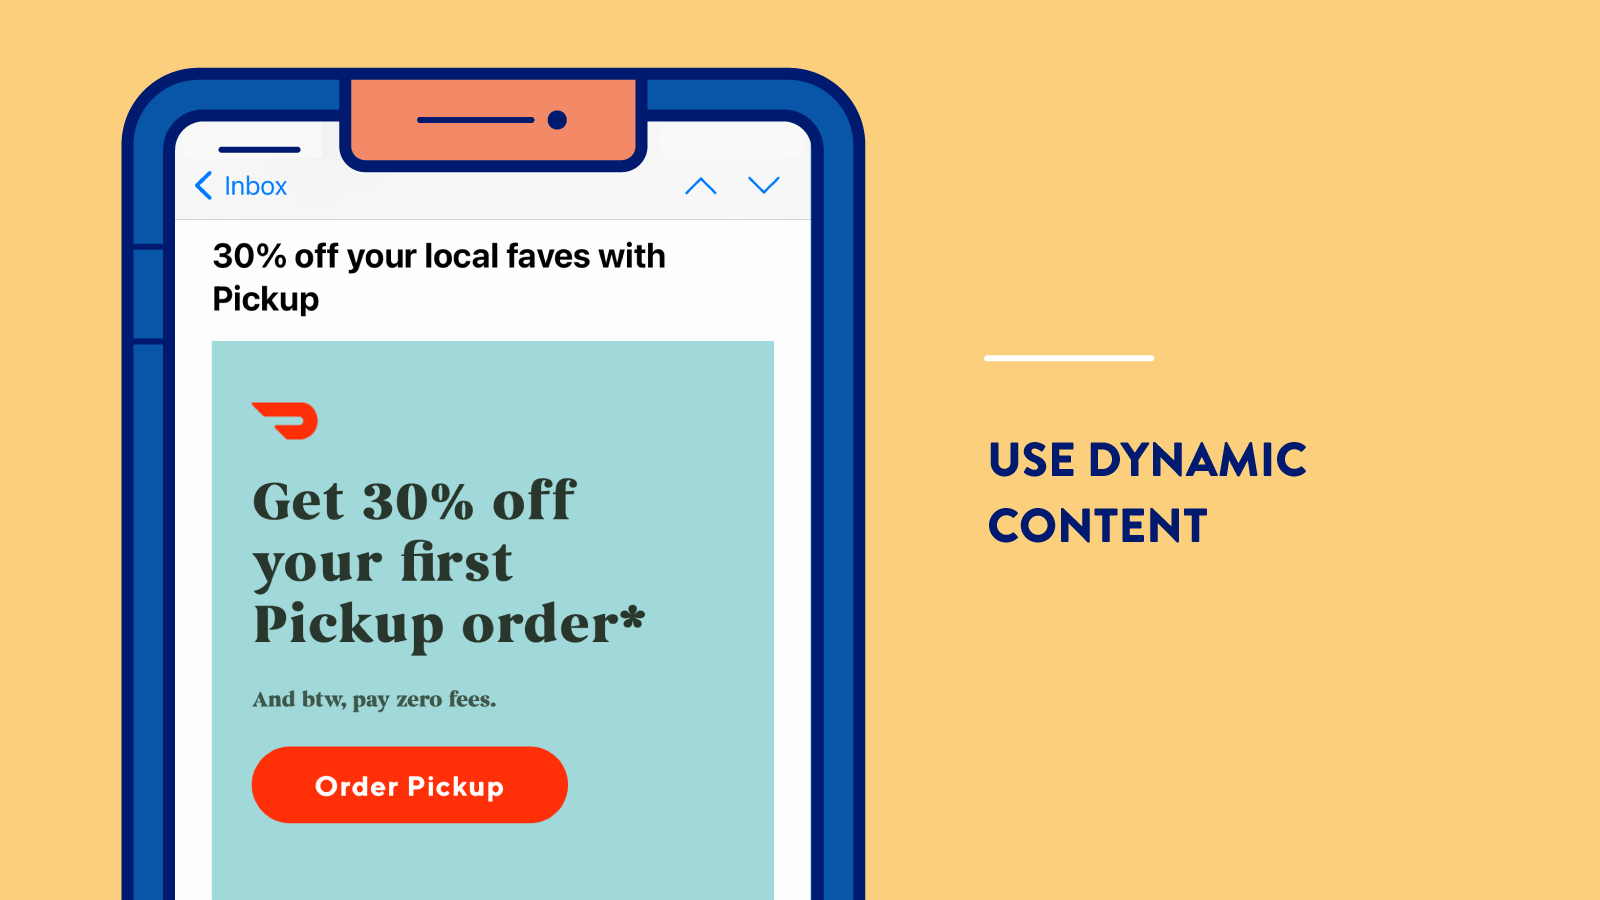 Personalization tip: Use Dynamic Content